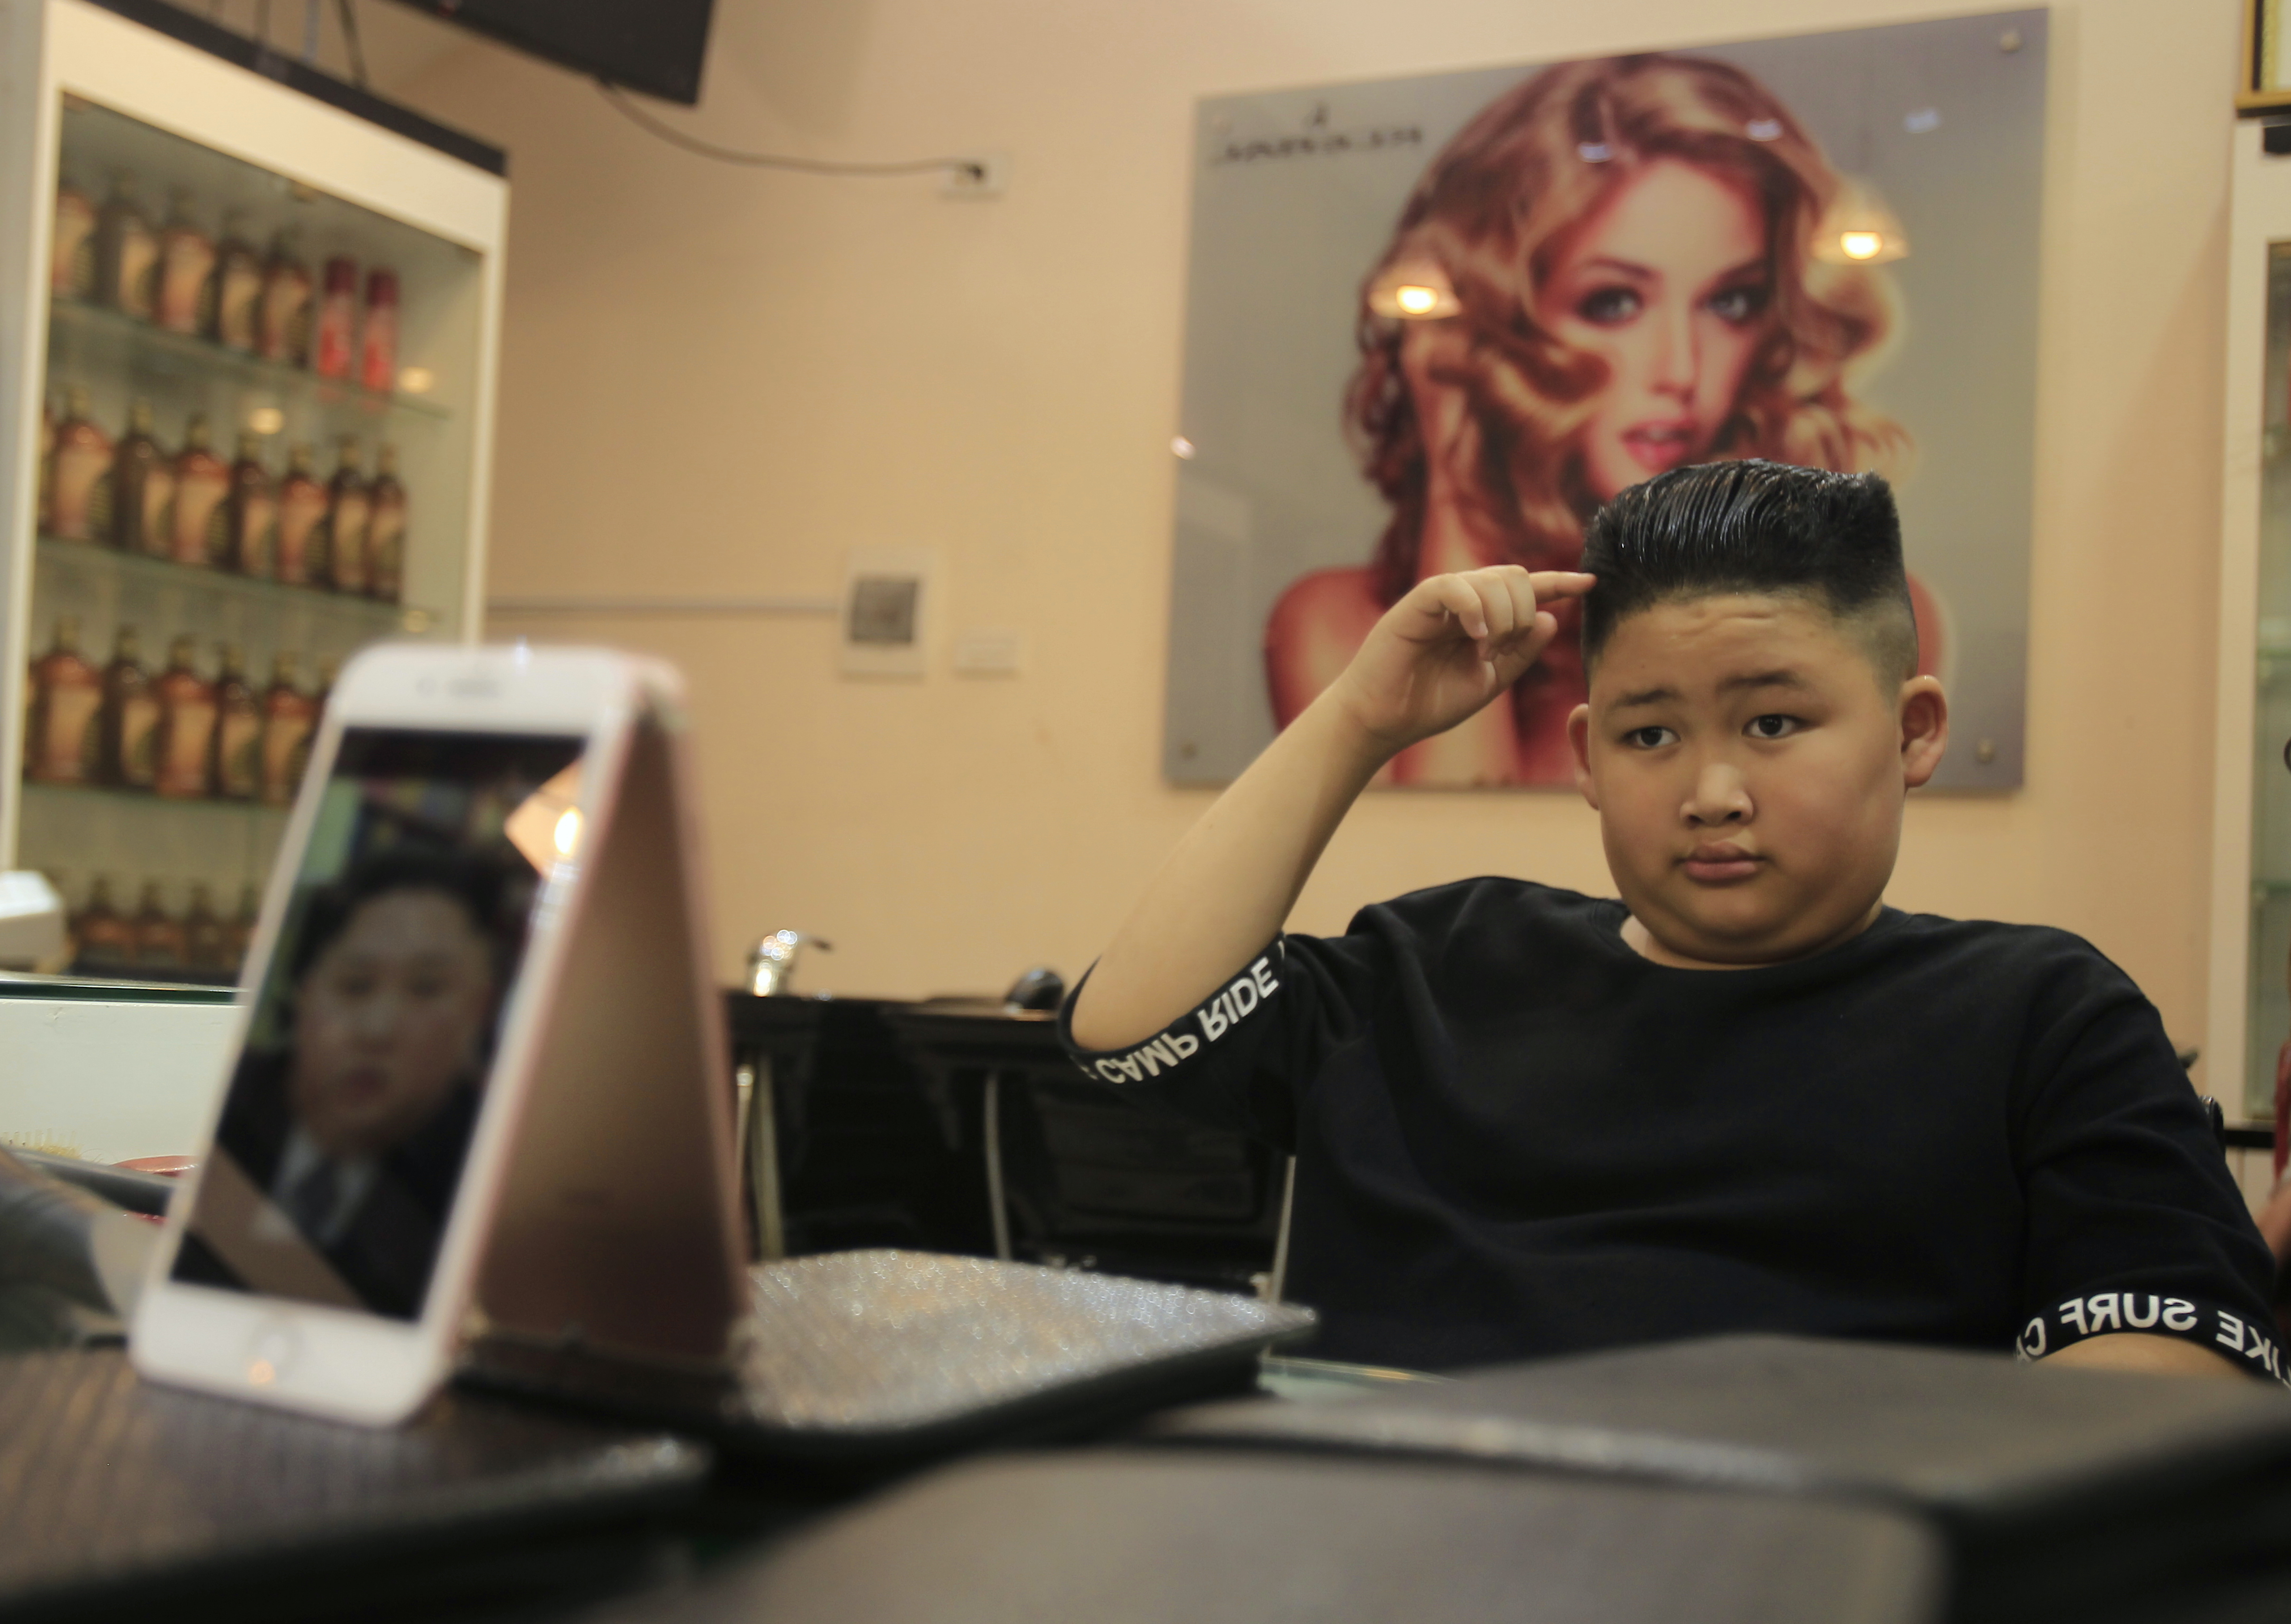 To Gia Huy, 9, checks his hair after getting a Kim Jong-un haircut in Hanoi on Tuesday.